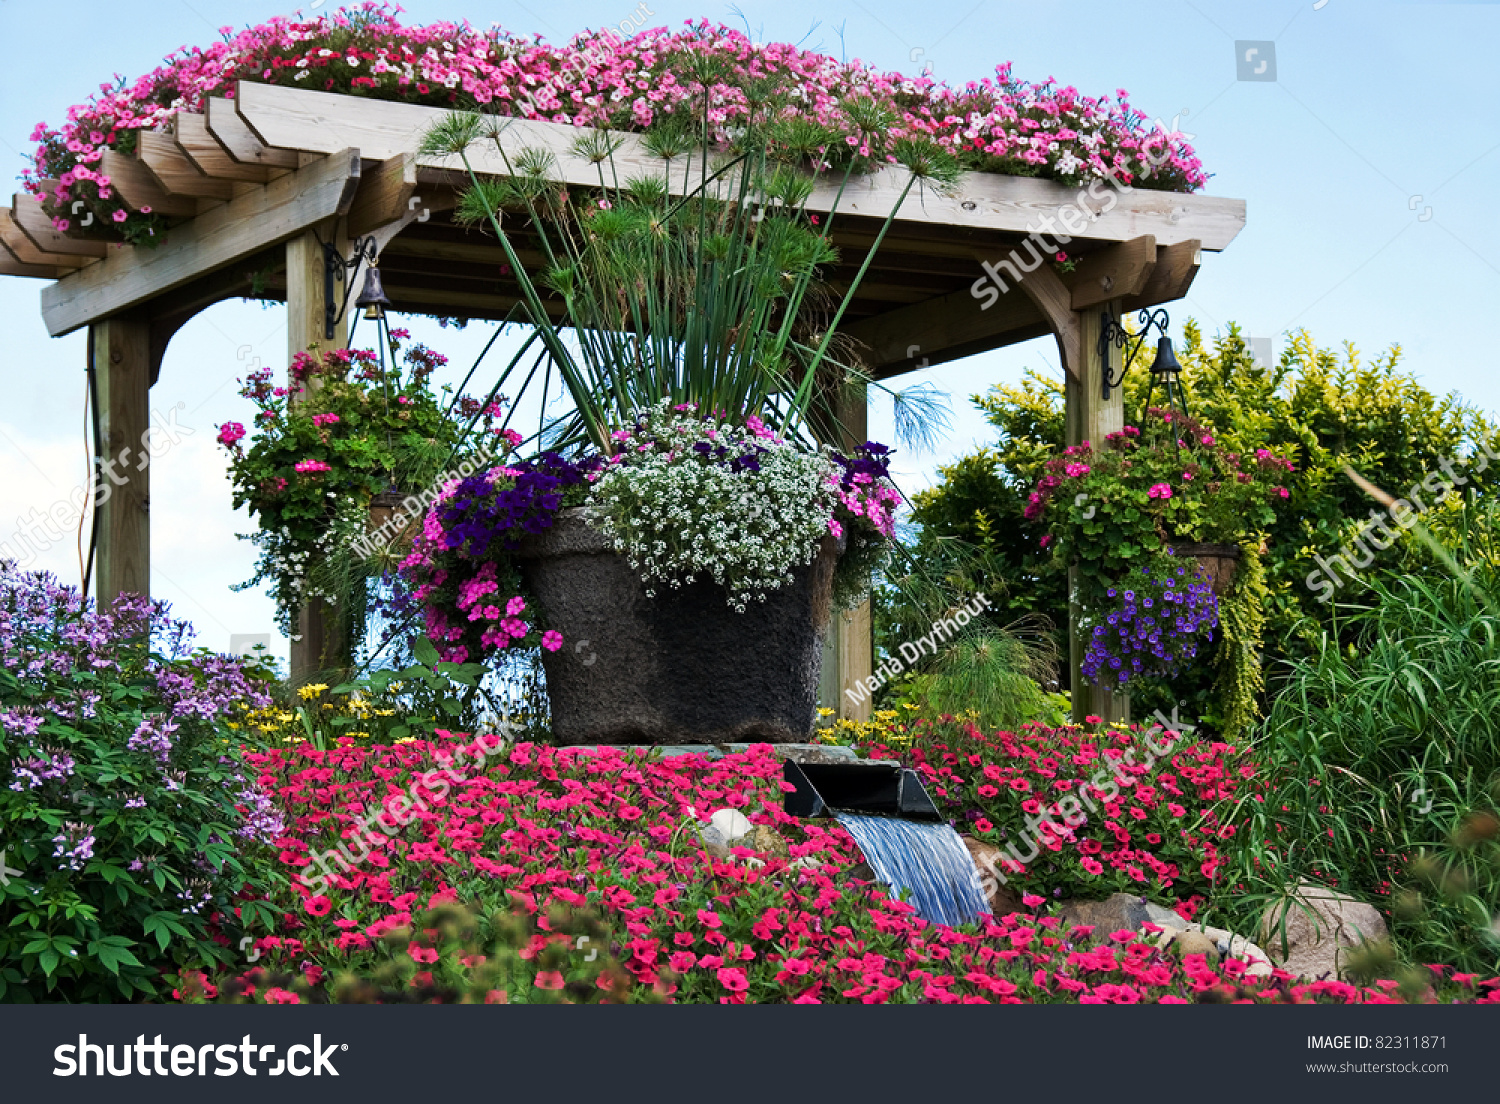 Waterfall Flowing Through Floral Garden Stock Photo 82311871